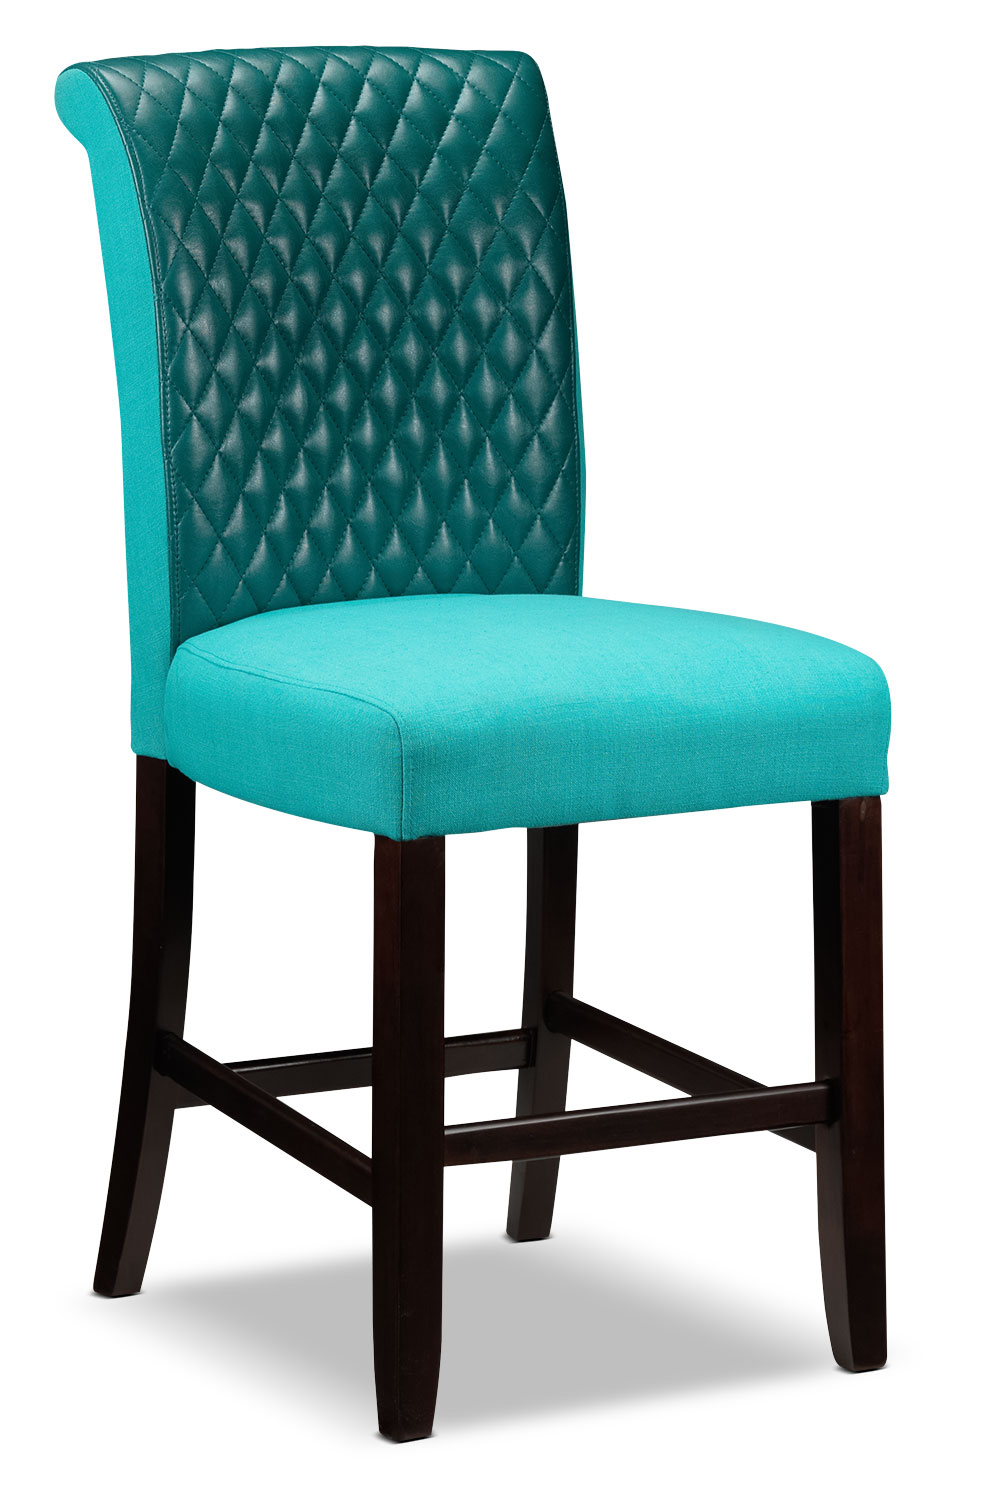 Casual Dining Room Furniture - Flora Pub Chair - Teal